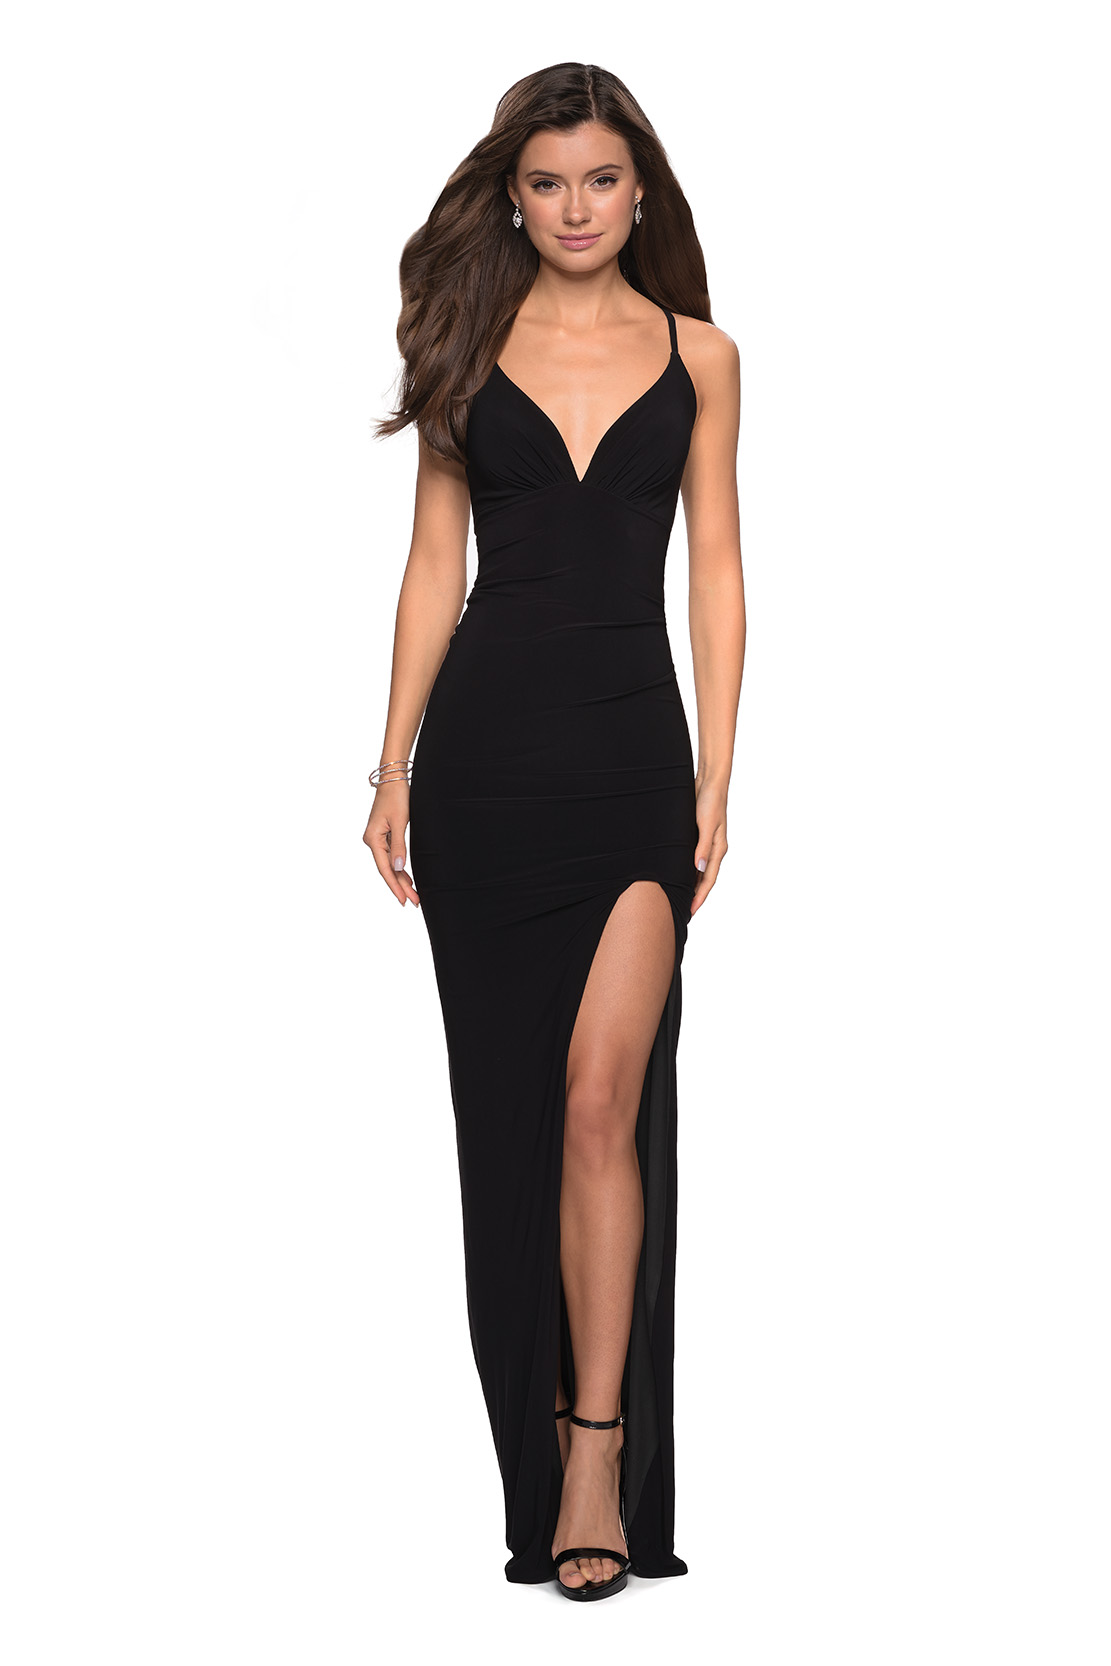 Black Prom Dress with Bow On the Back